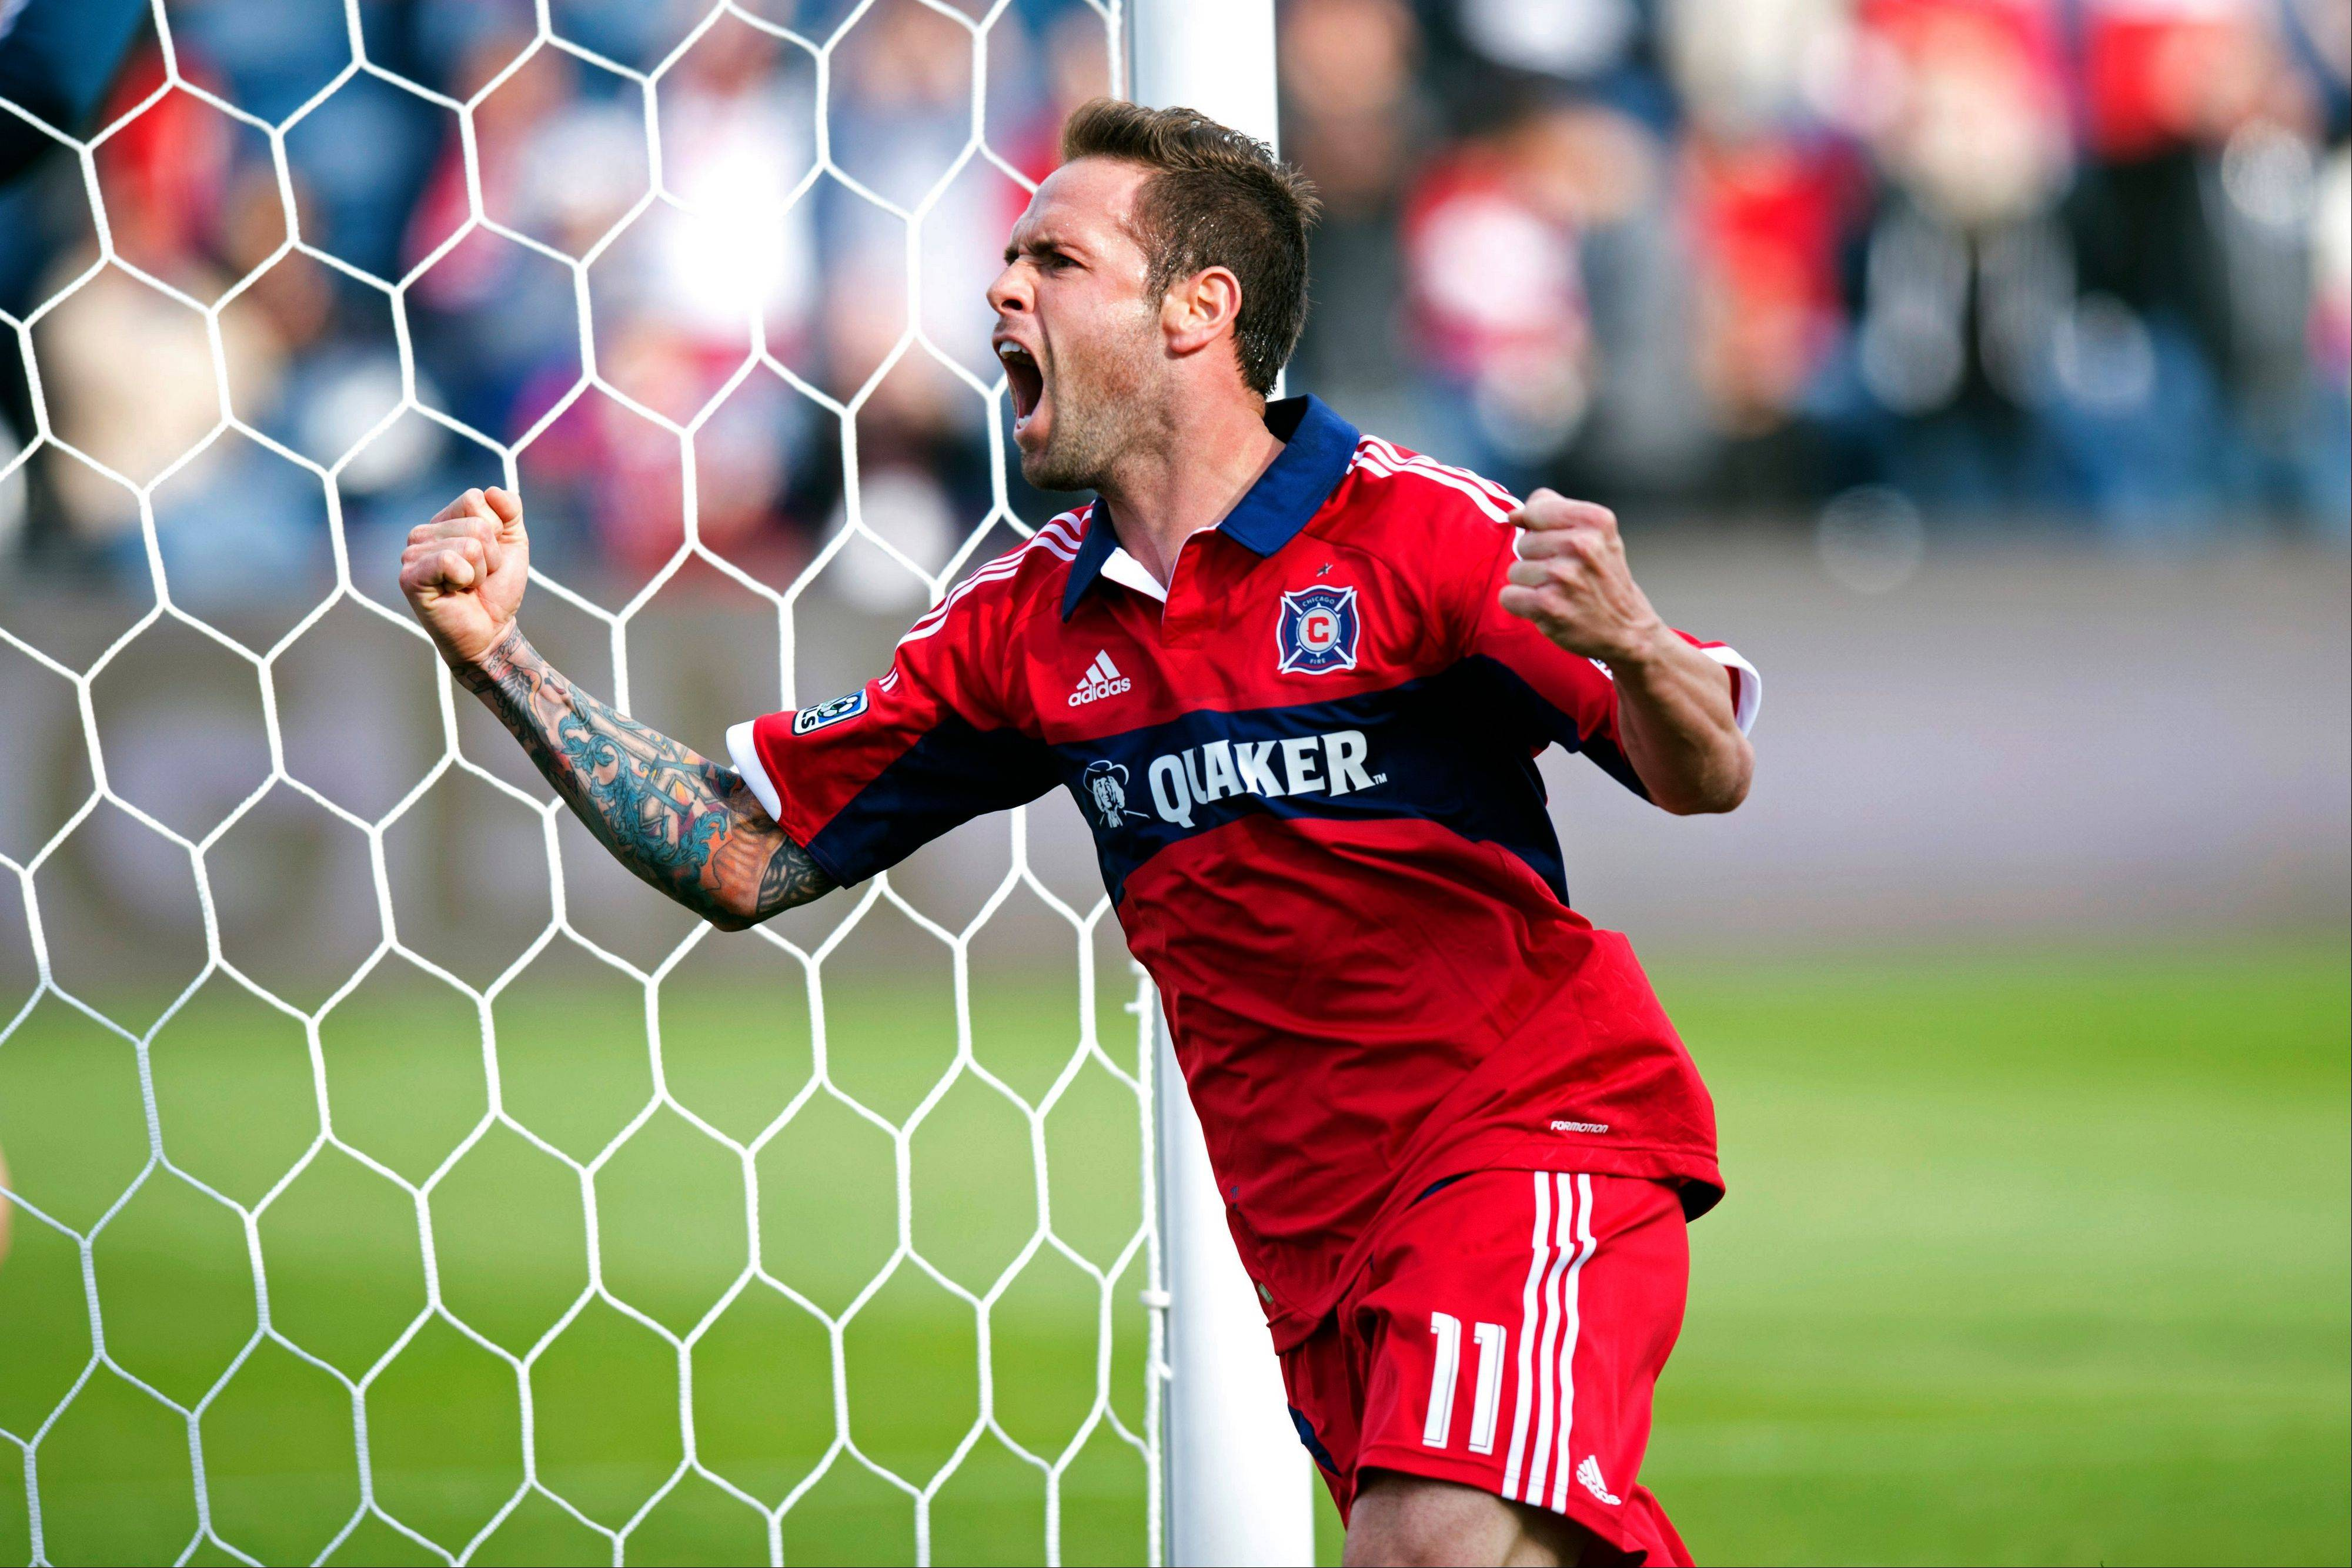 In this photo provided by the Chicago Fire, Chicago Fire forward Daniel Paladini celebrates his goal against the New York Red Bulls during the first half of an MLS soccer match, Sunday, April 7, 2013, in Bridgeview, Ill. The Fire won 3-1. (AP Photo/Chicago Fire, Brian Kersey)